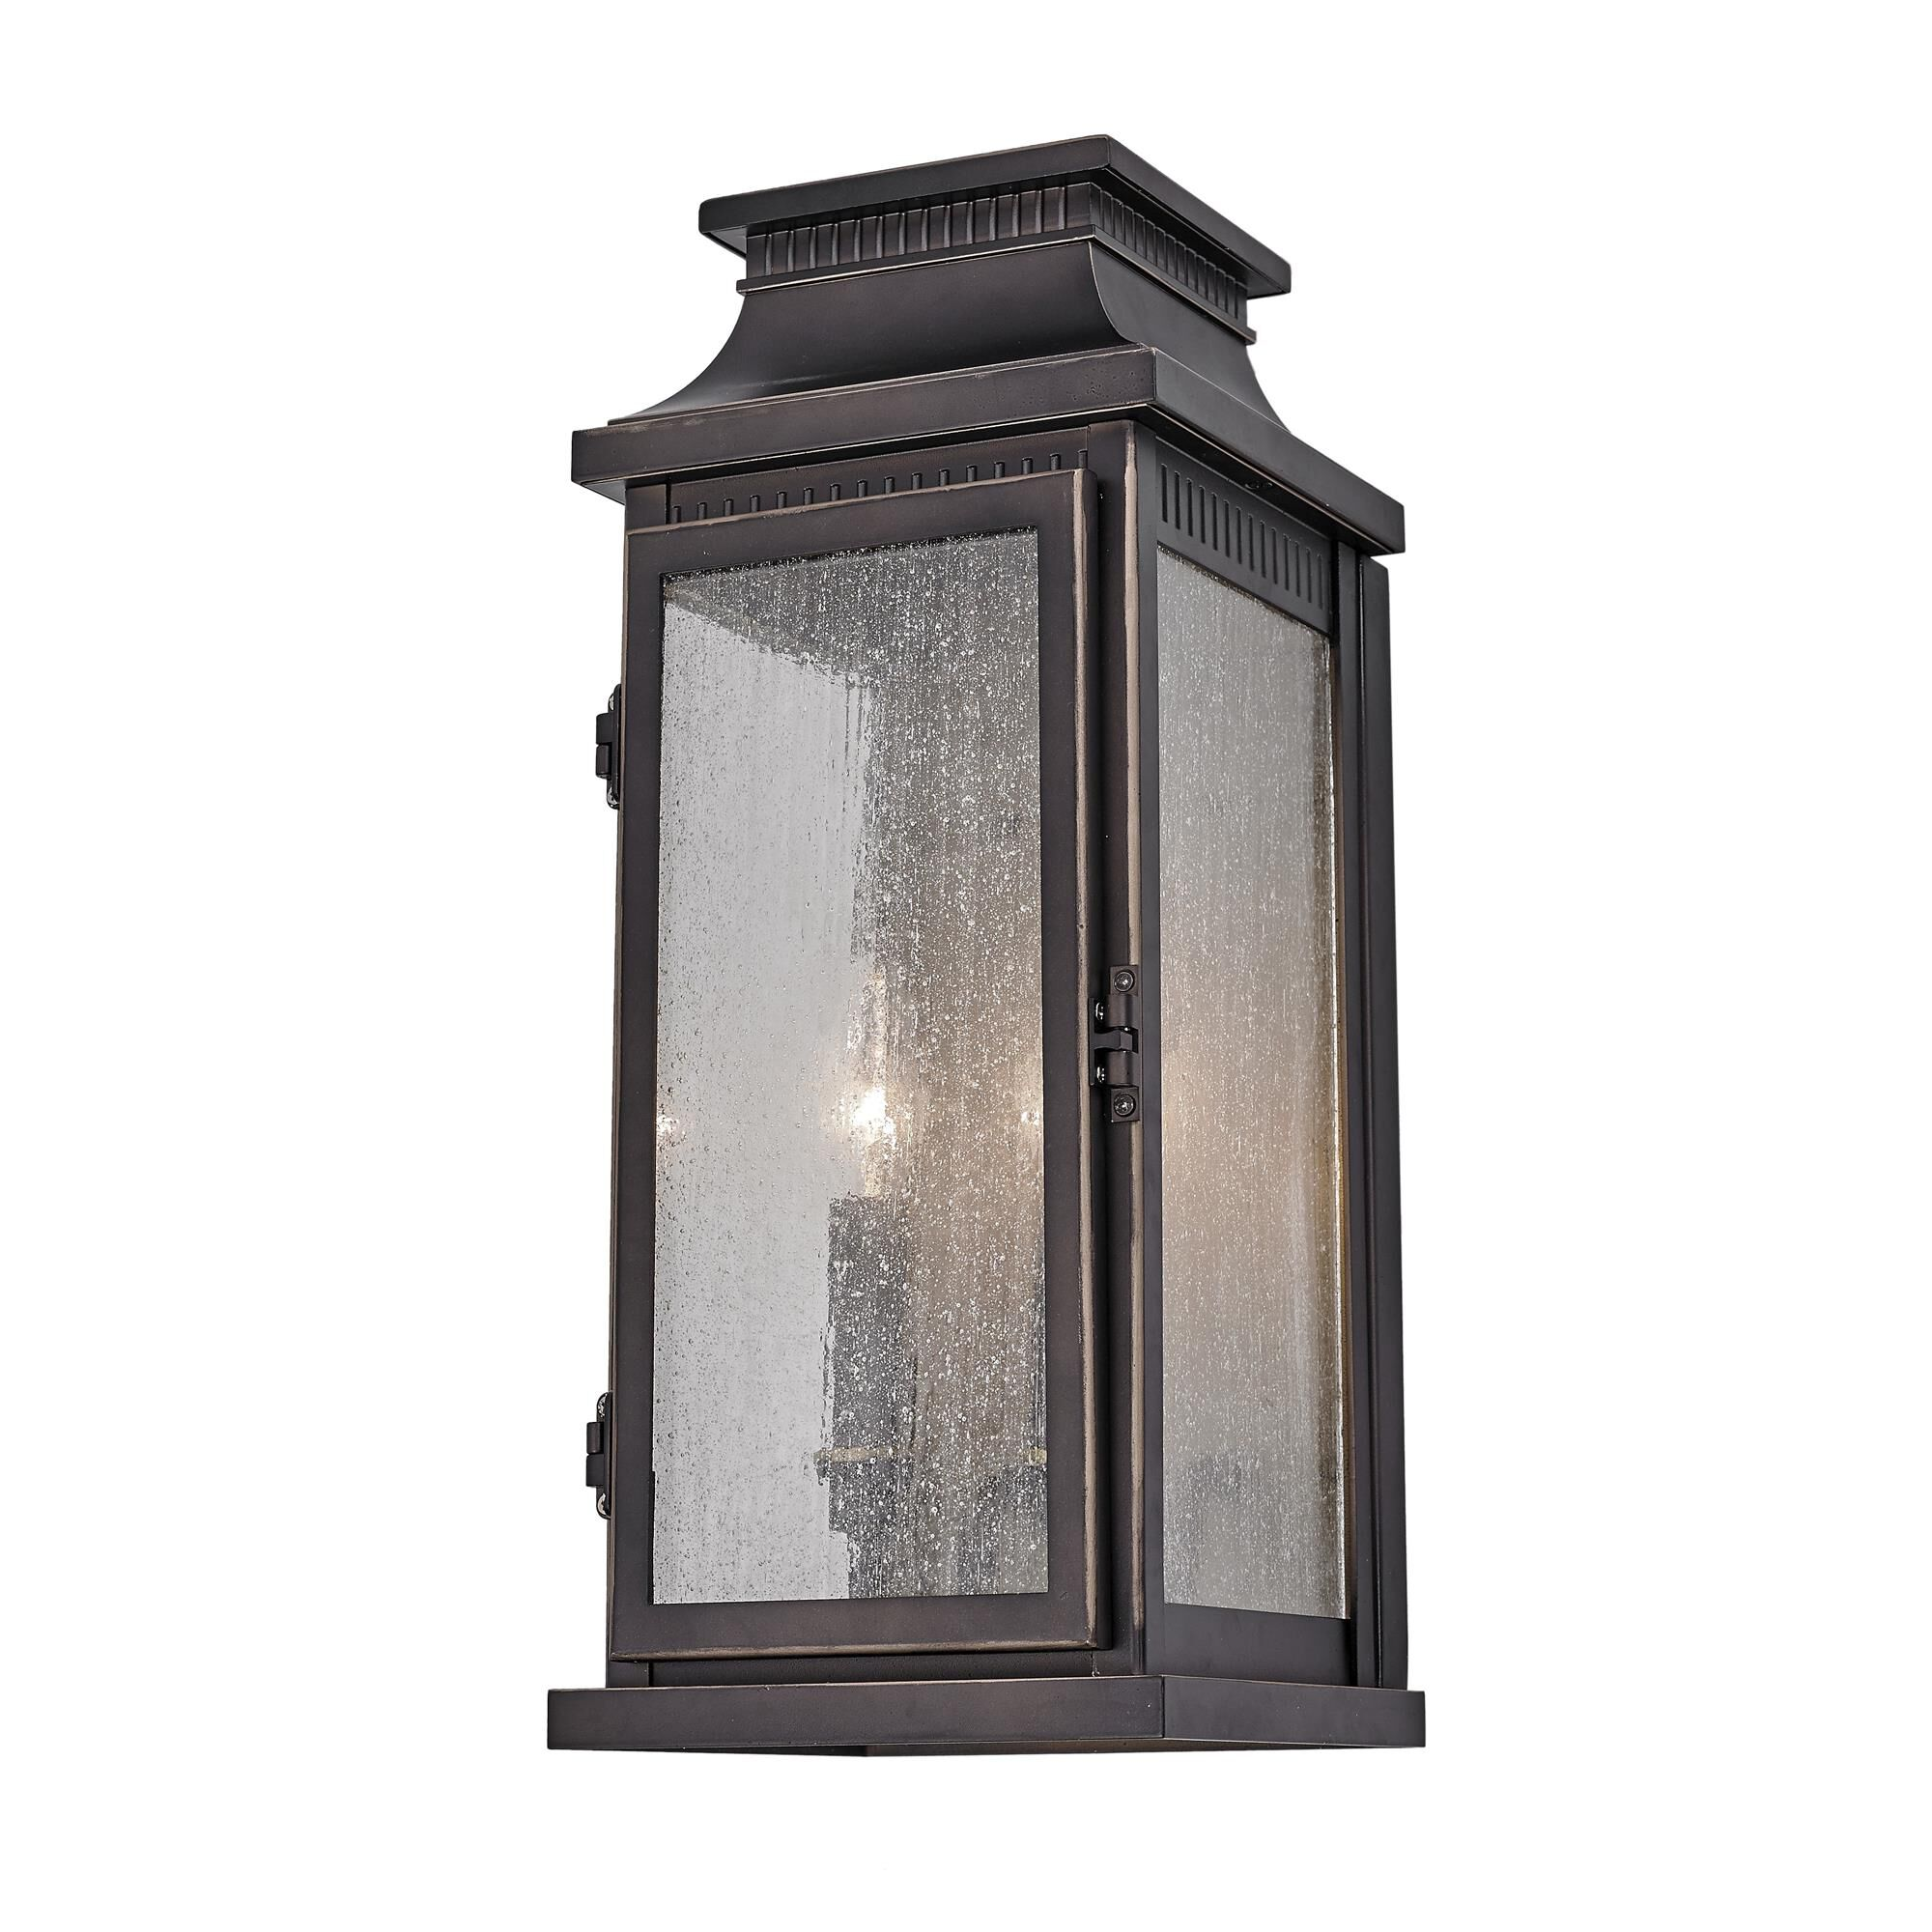 Artcraft Mansard 2 Light Outdoor Wall Light Mansard - Ac8172ob - Traditional Outdoor Wall Light